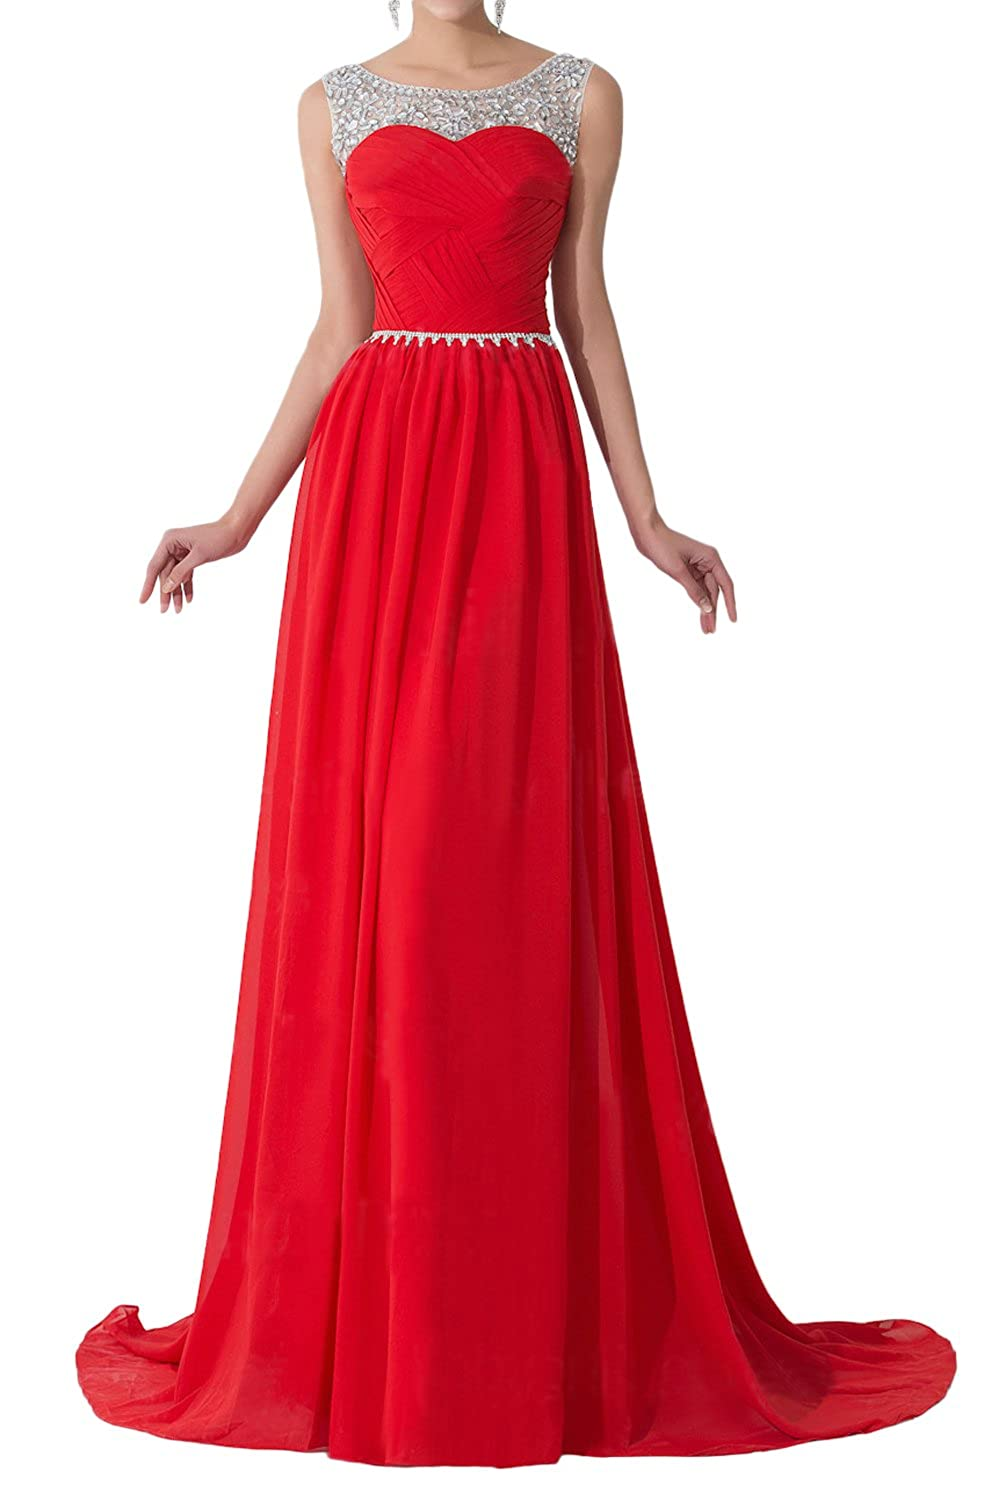 e53531f438c DINGZAN Chiffon Evening Prom Bridesmaid Dresses Sheer Sequined Straps at  Amazon Women s Clothing store